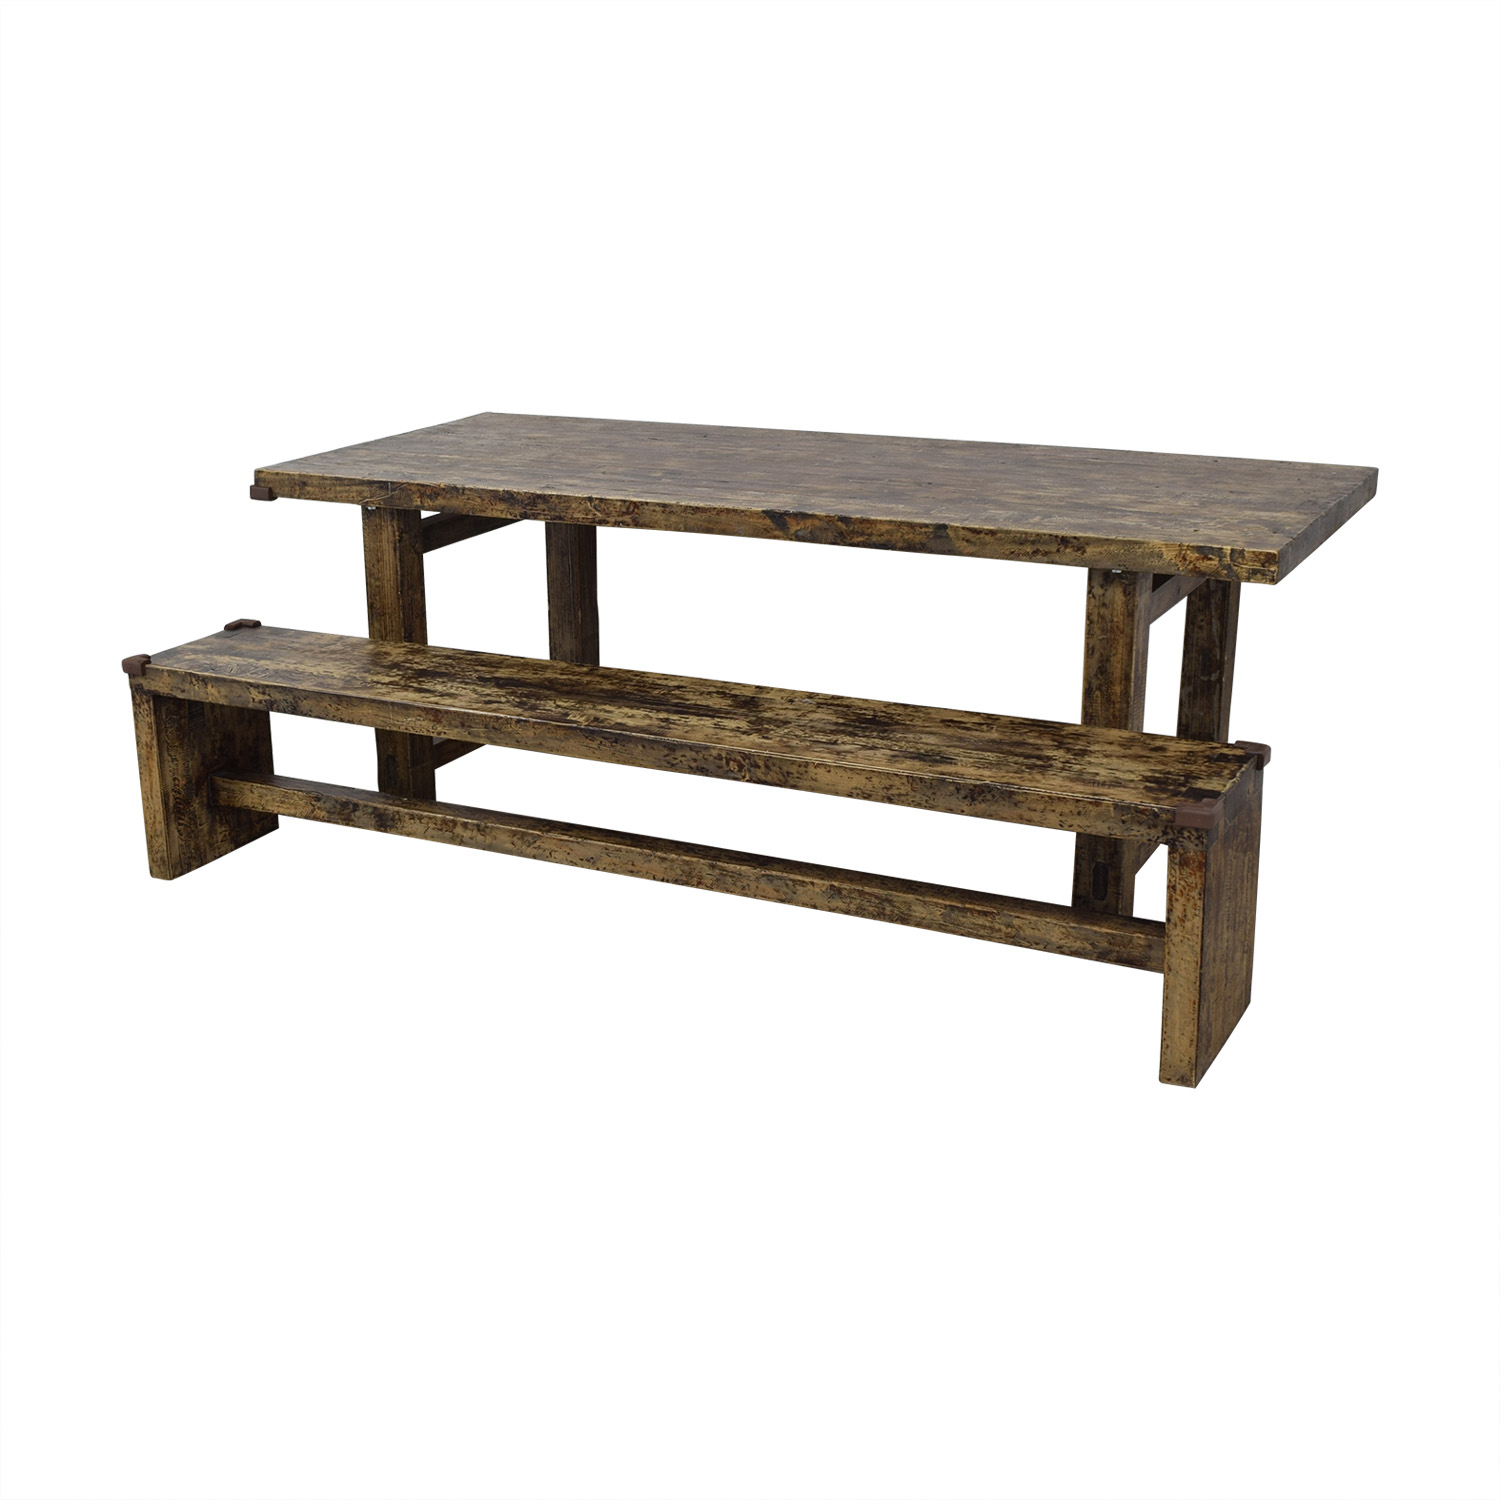 Rustic Farm Dining Table with Bench dimensions